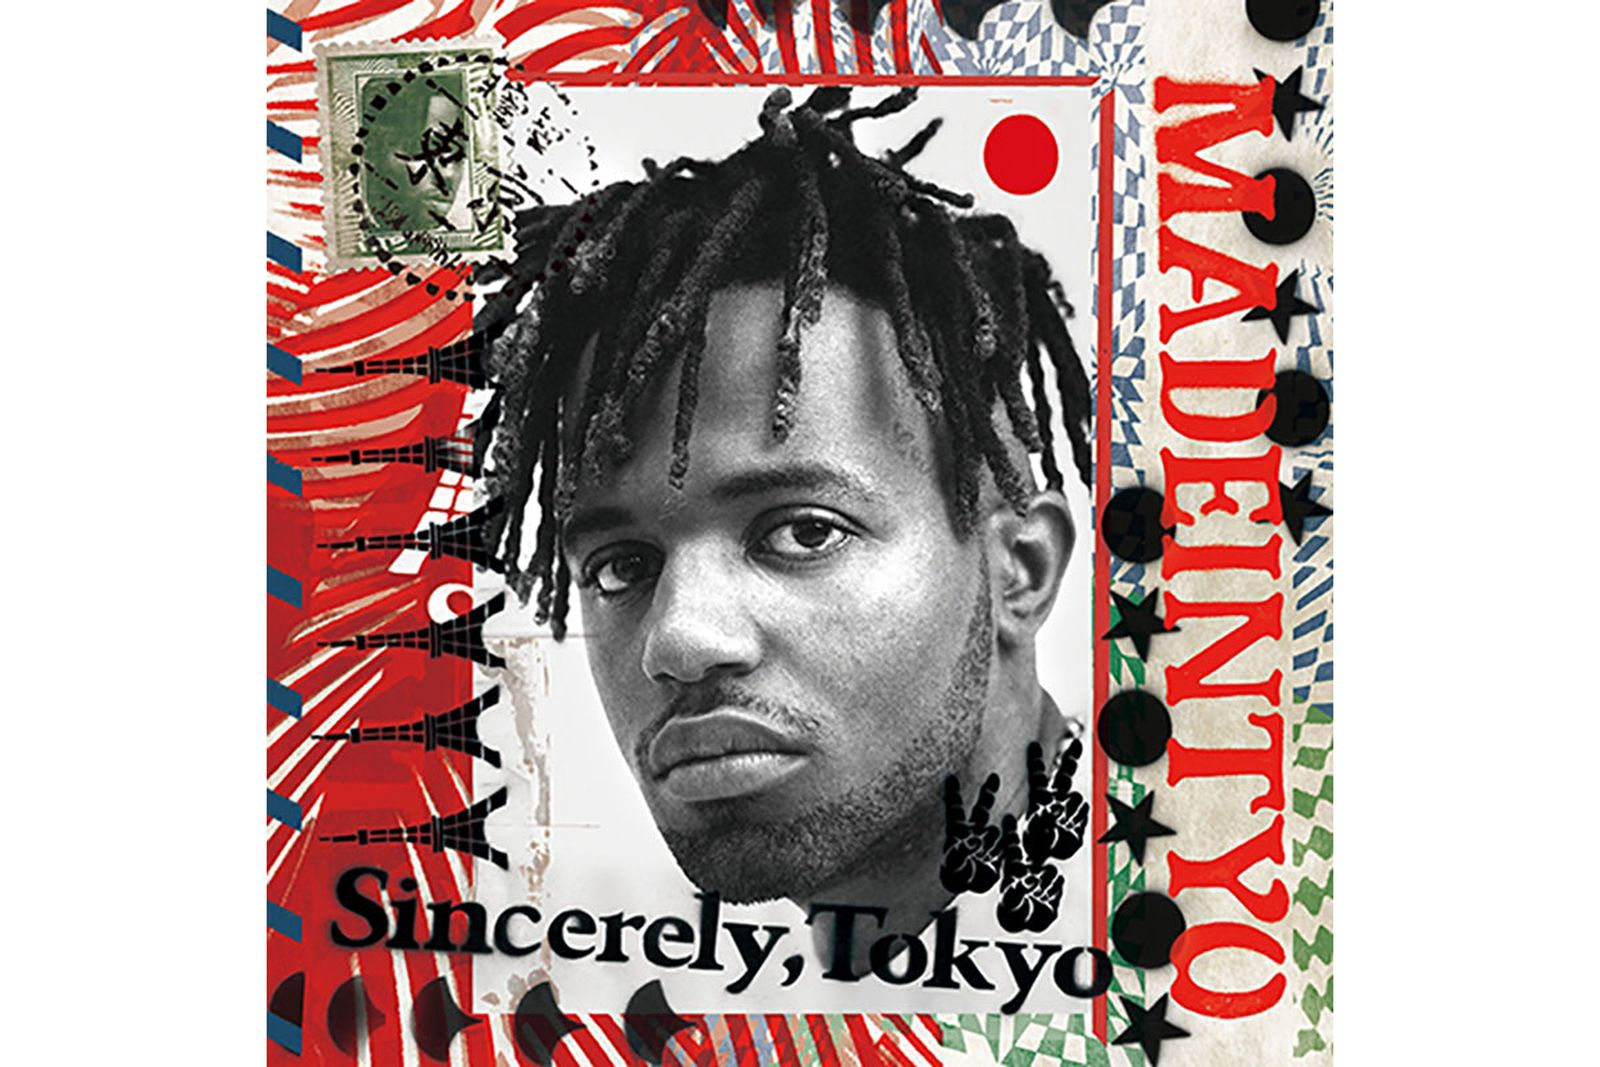 madeintyo sincerely tokyo review